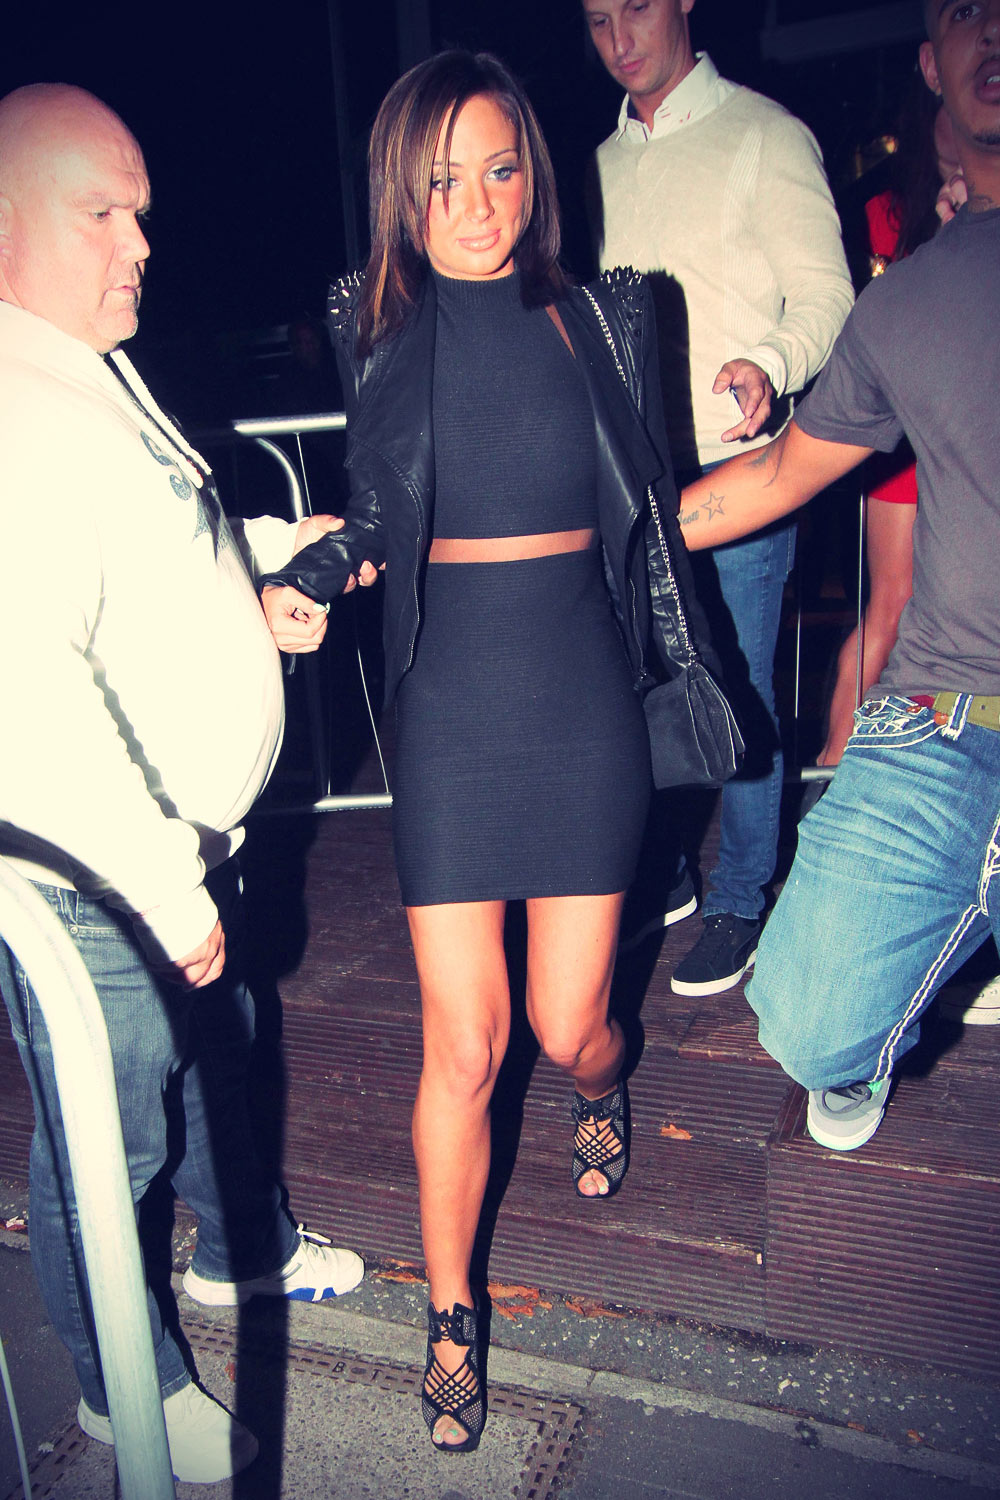 Tulisa Contostavlos night out clubbing in Essex